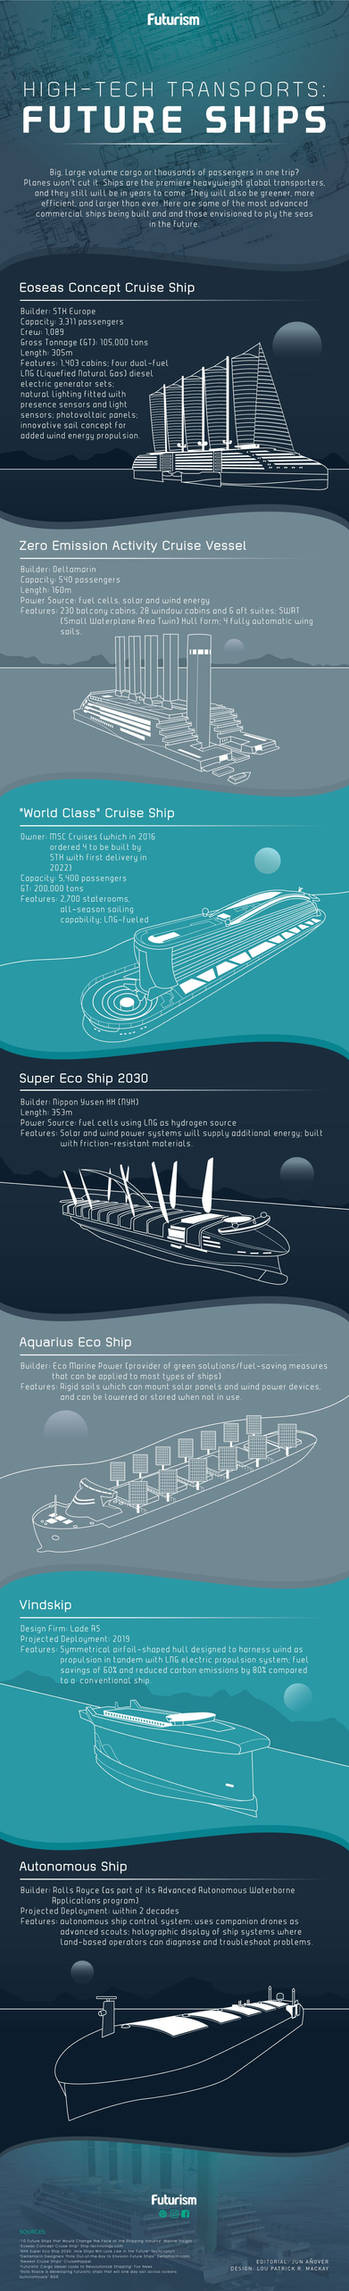 Ships of the future